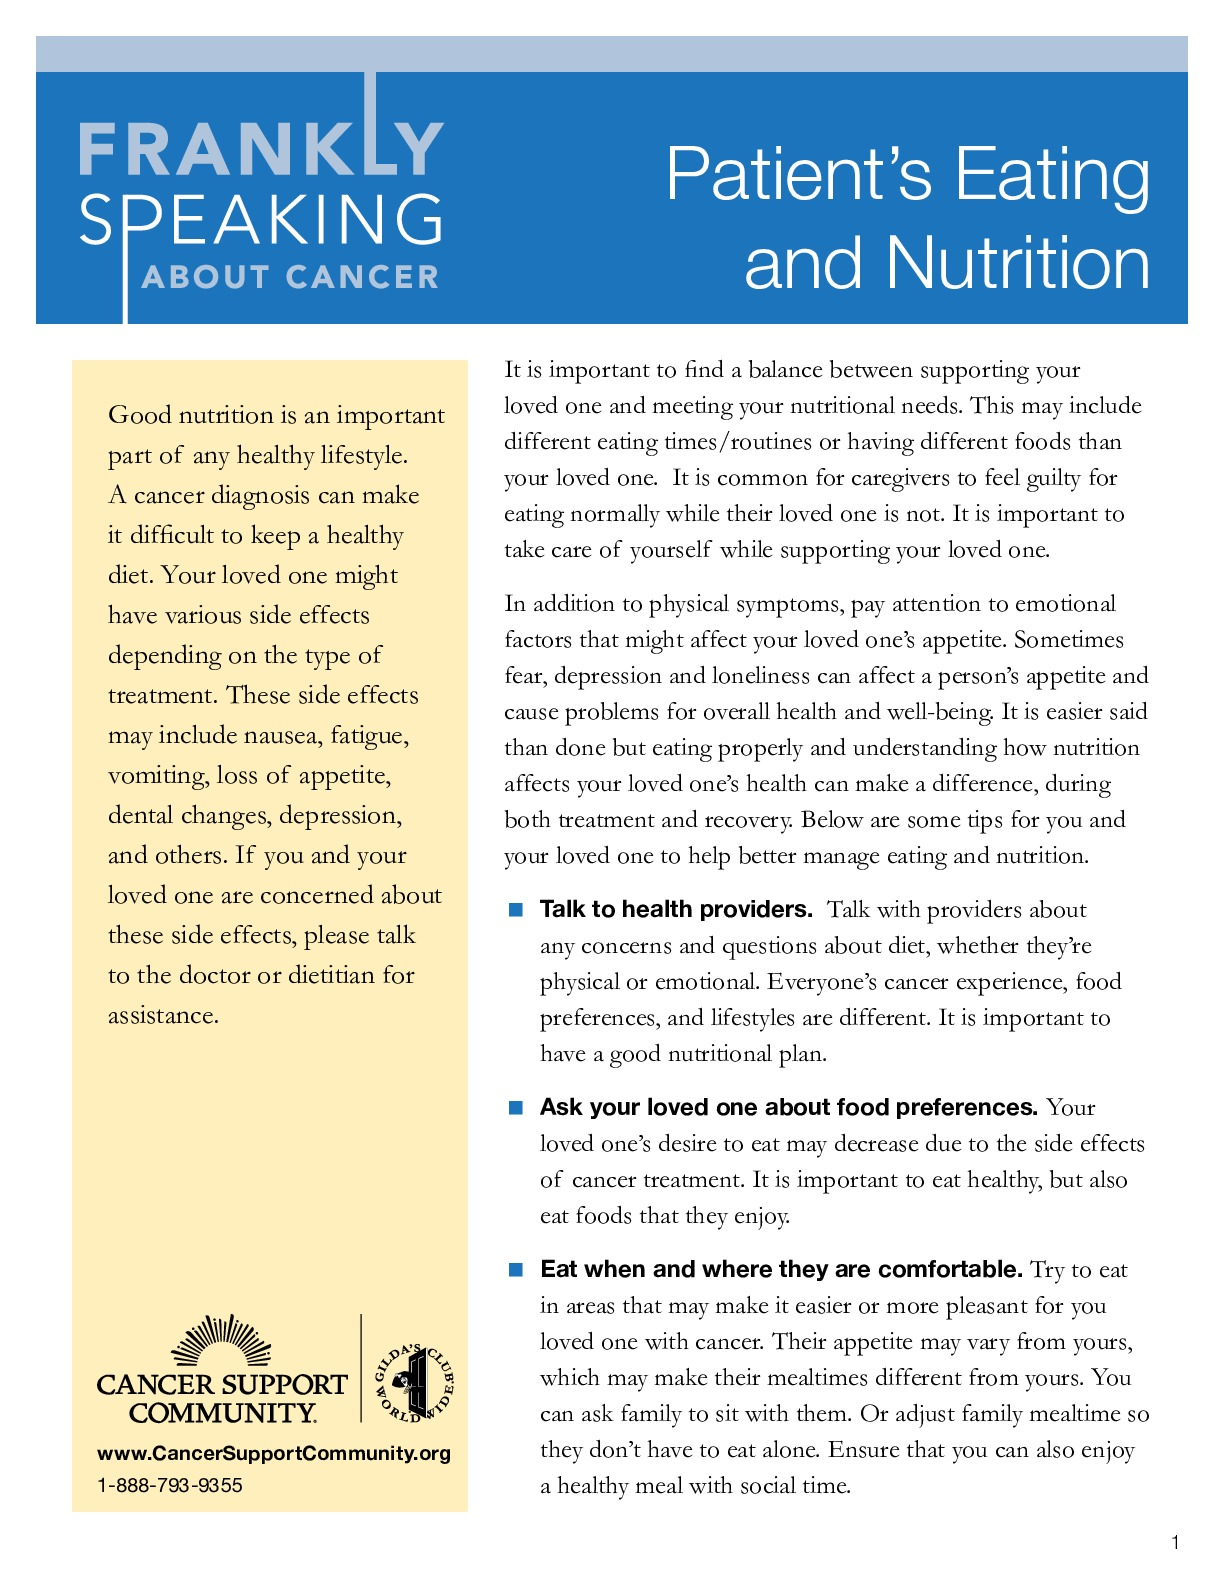 Patients Eating and Nutrition